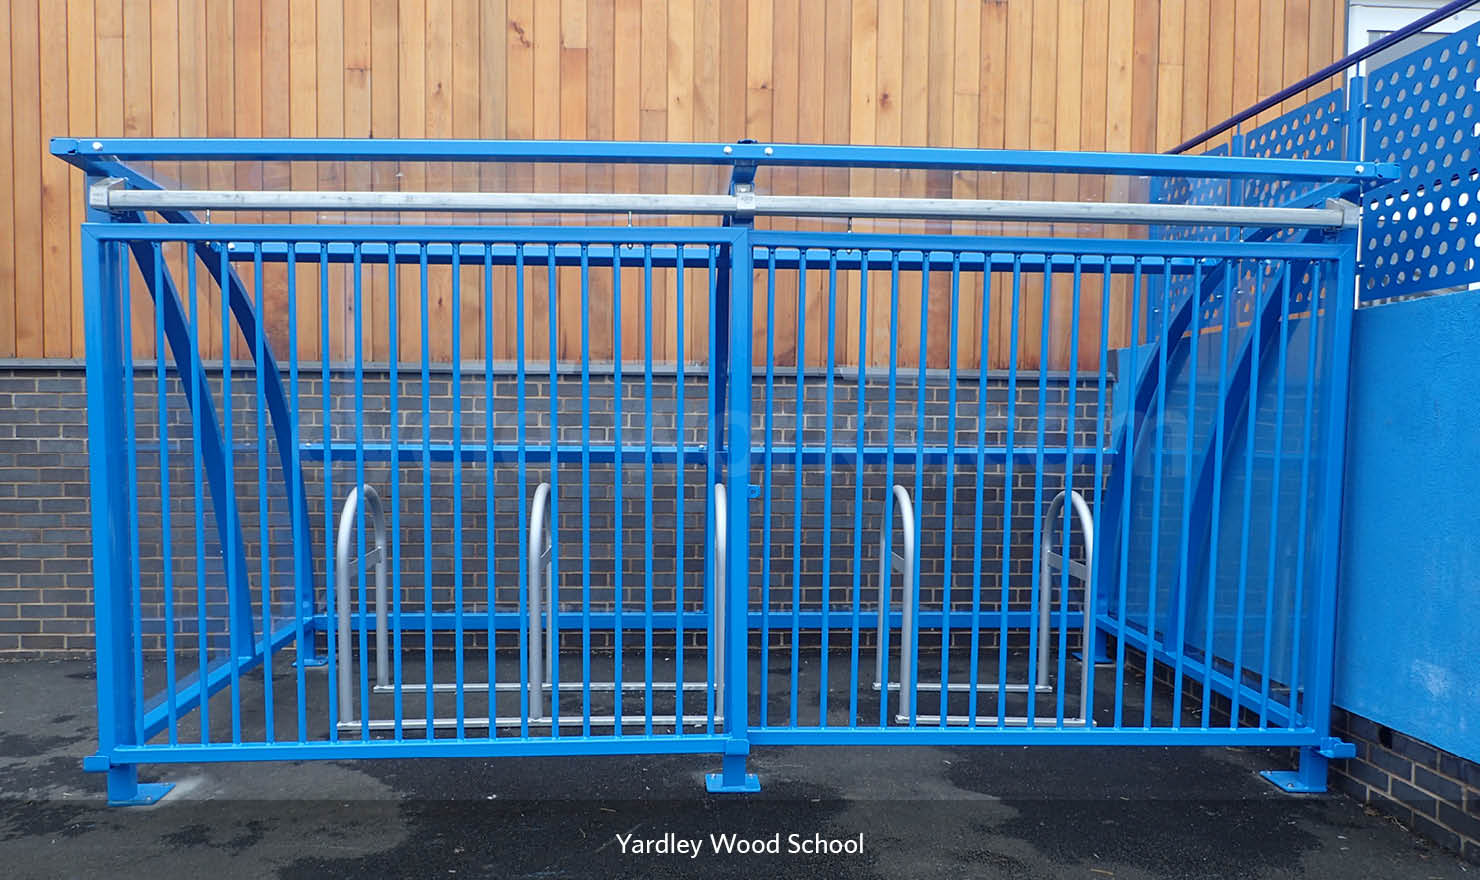 Solent Bike Shelter Installed with Rounded A Racks